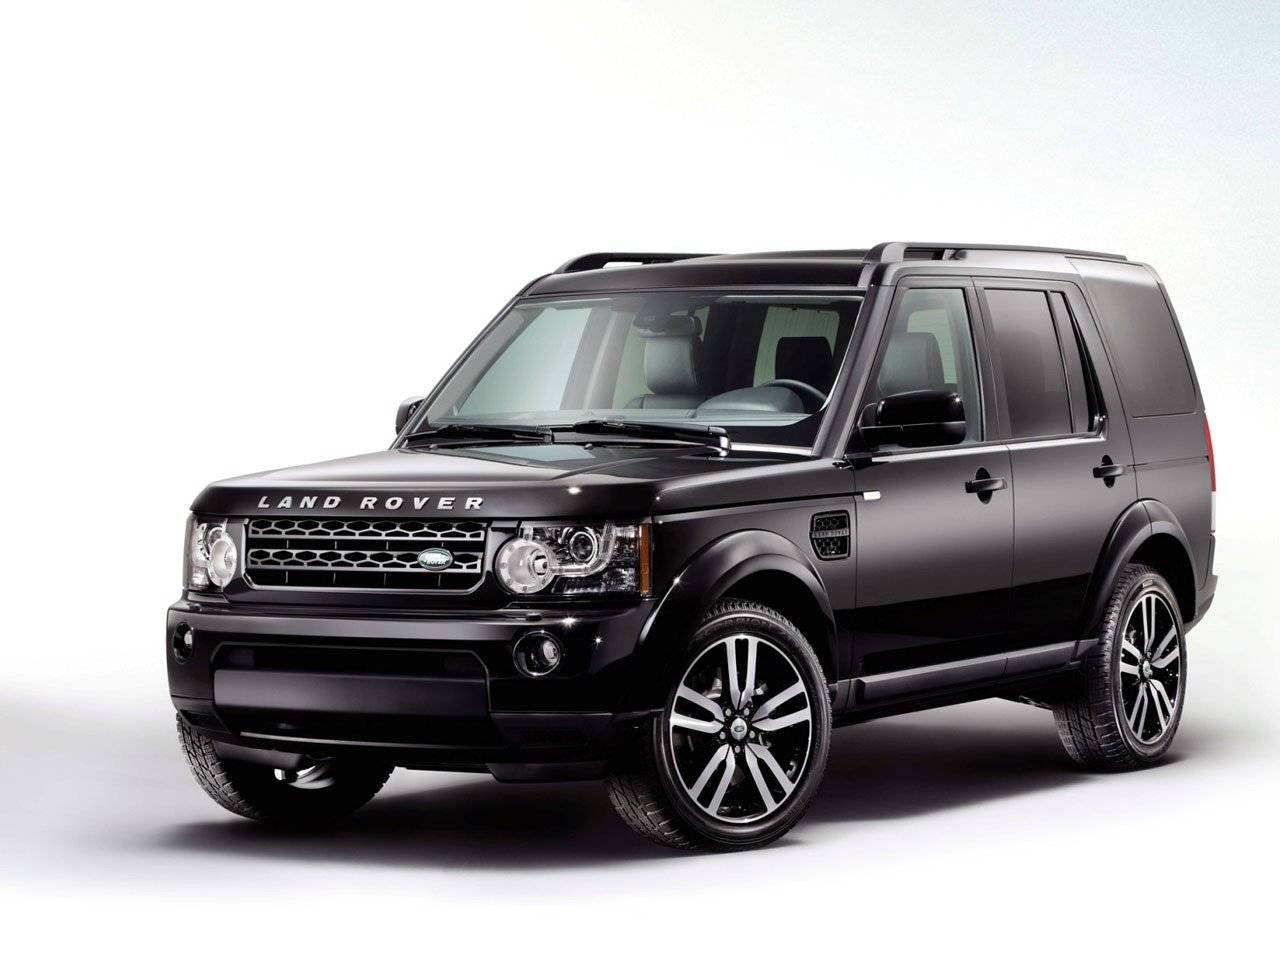 land rover discovery 4 black white autonieuws. Black Bedroom Furniture Sets. Home Design Ideas